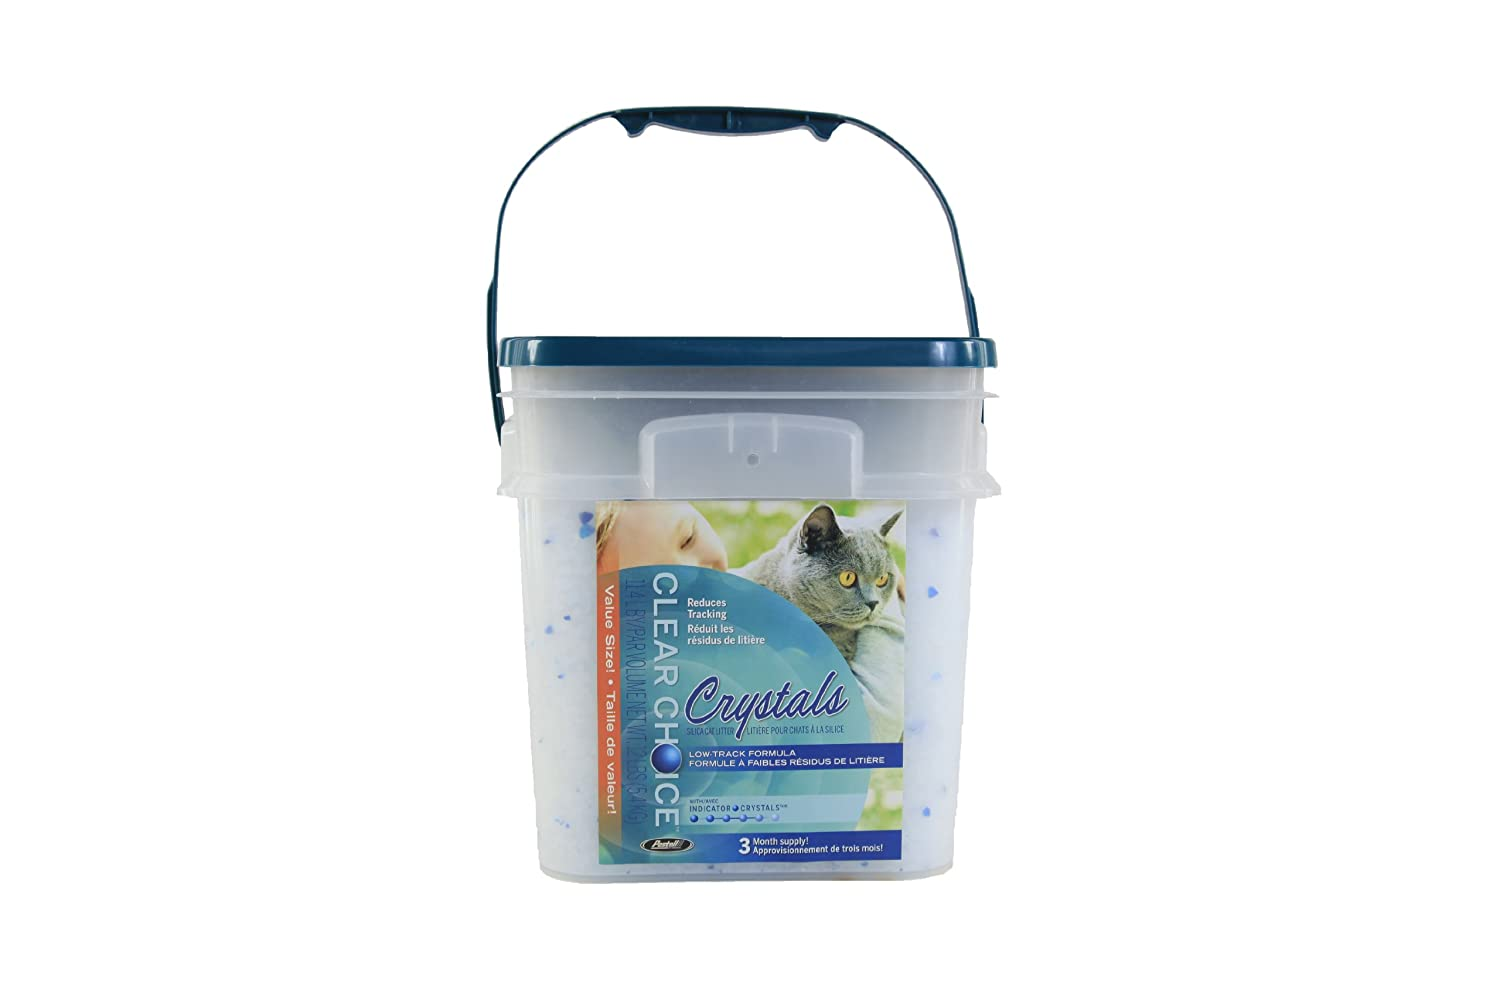 Clear Choice Silica Crystals Cat Litter Pail 12-Pound